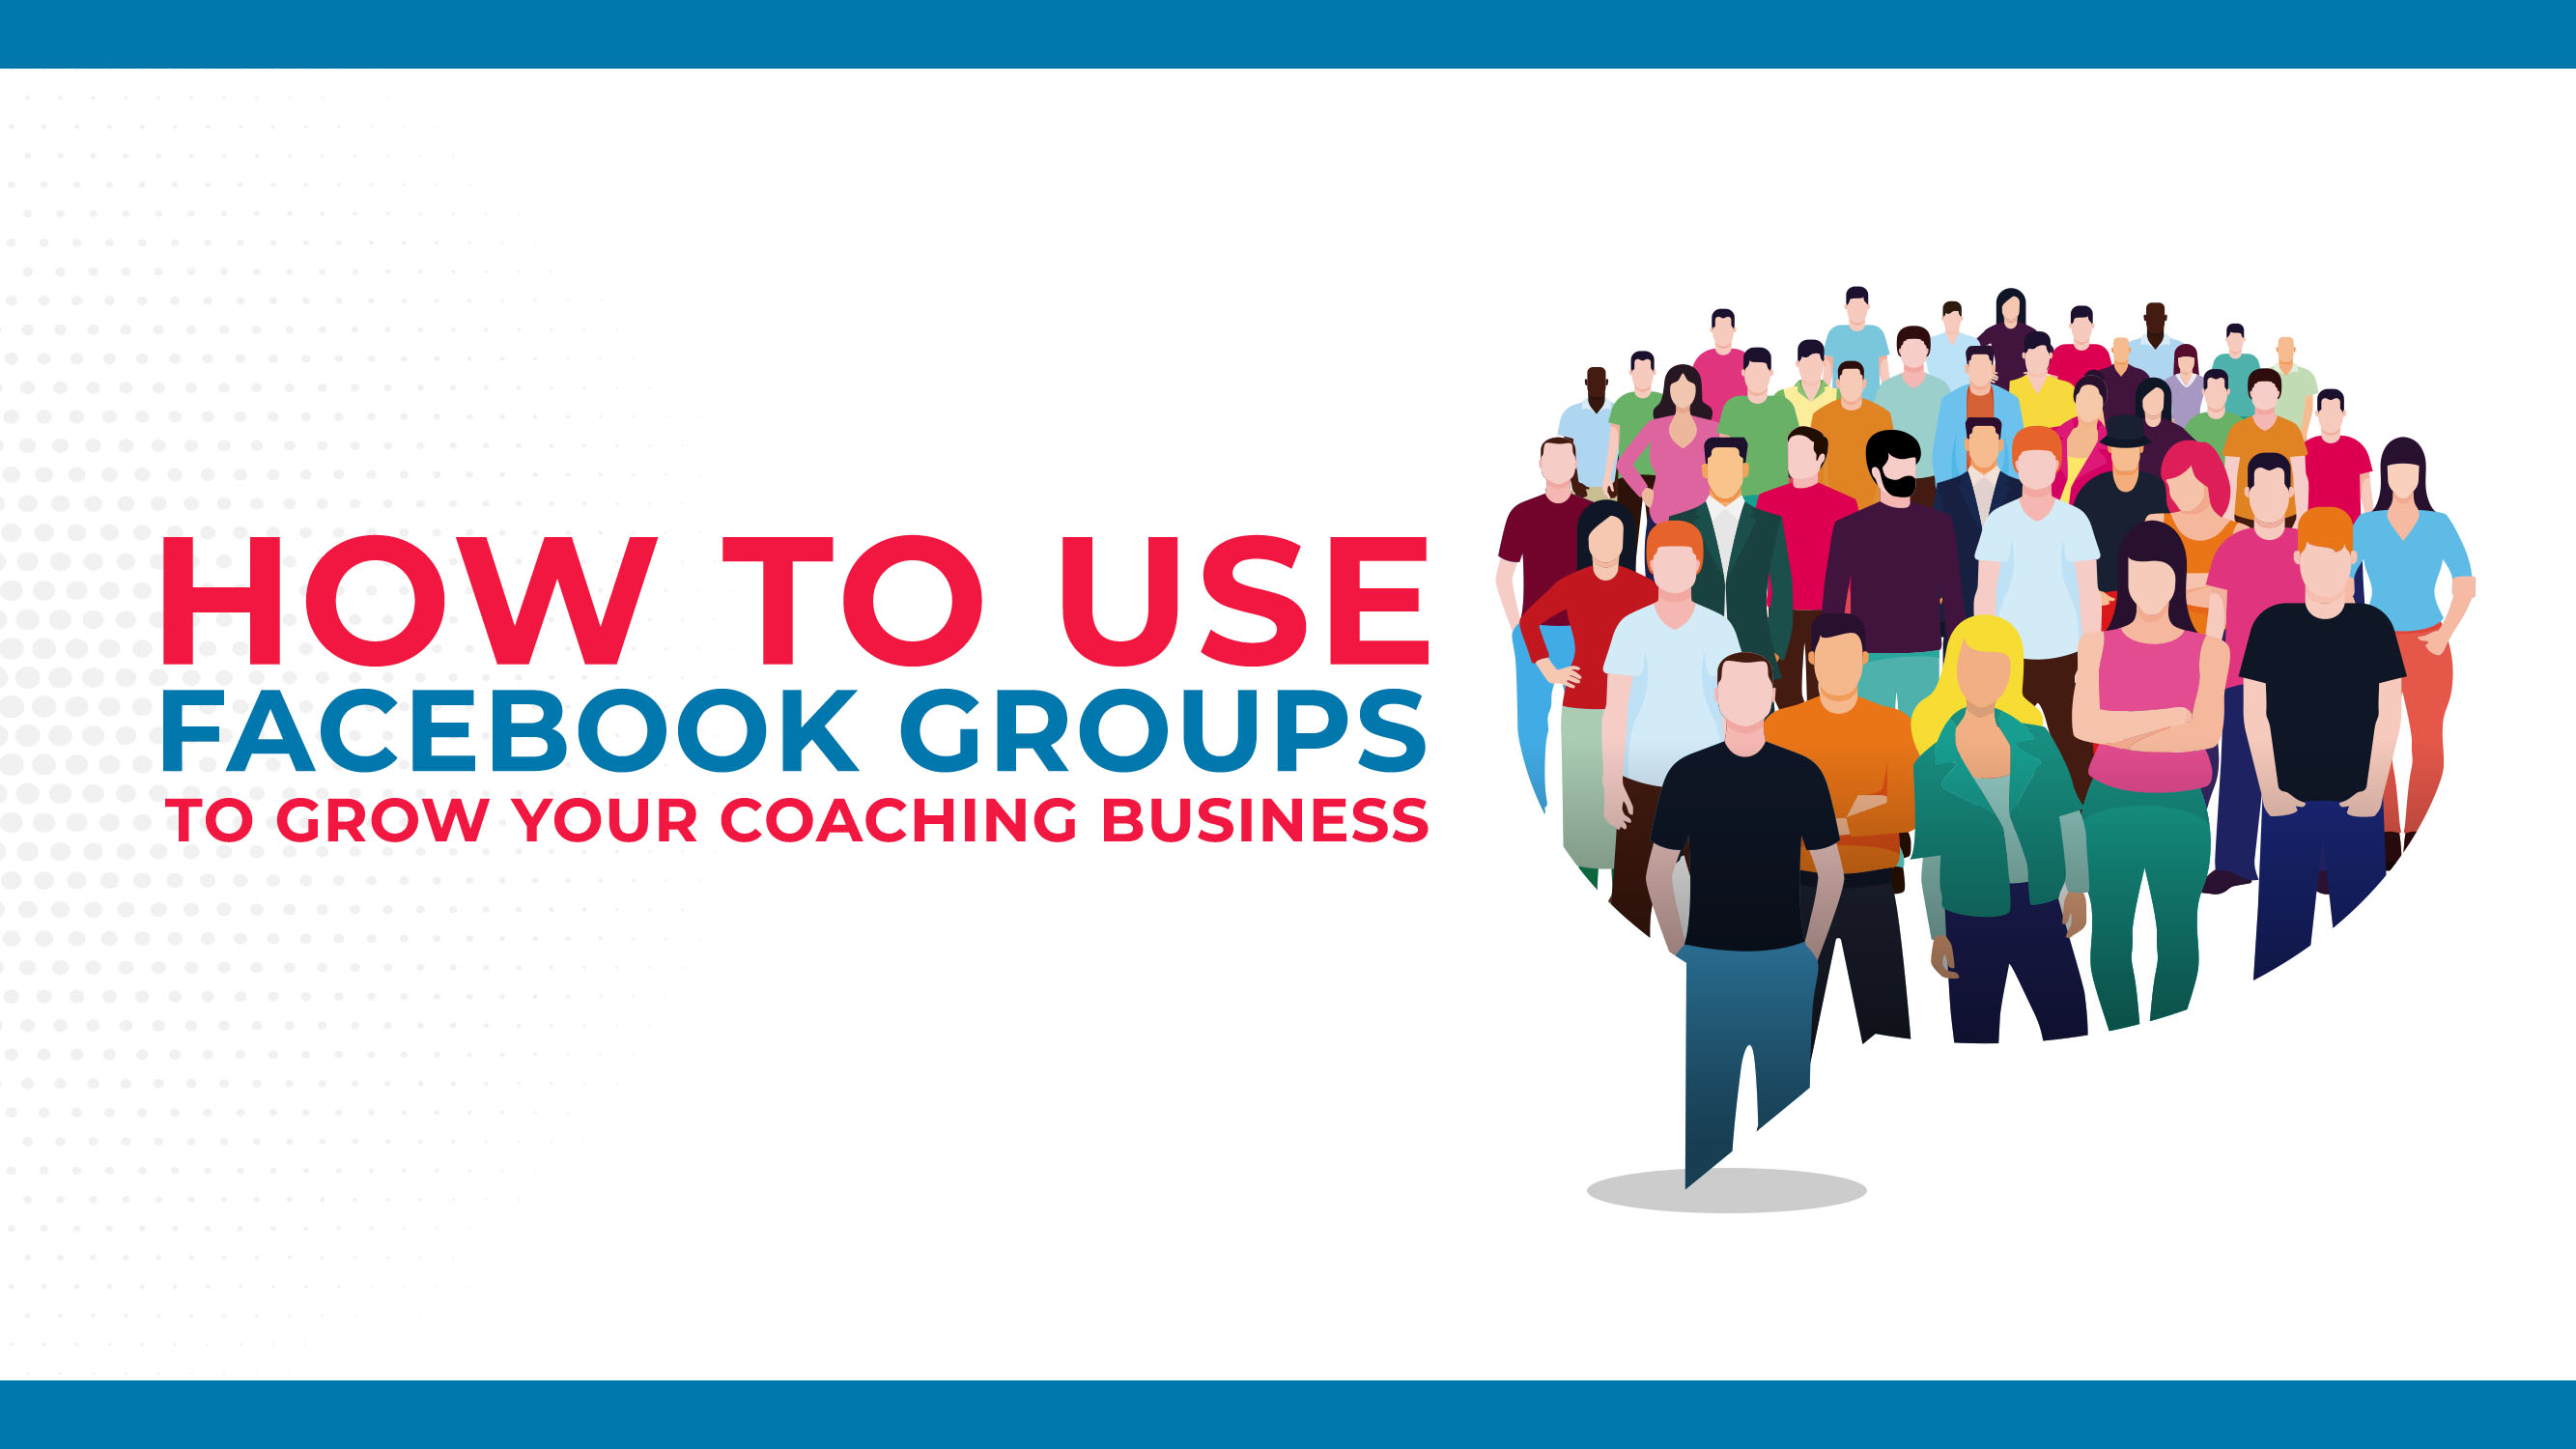 How To Use Facebook Groups To Grow Your Coaching Business